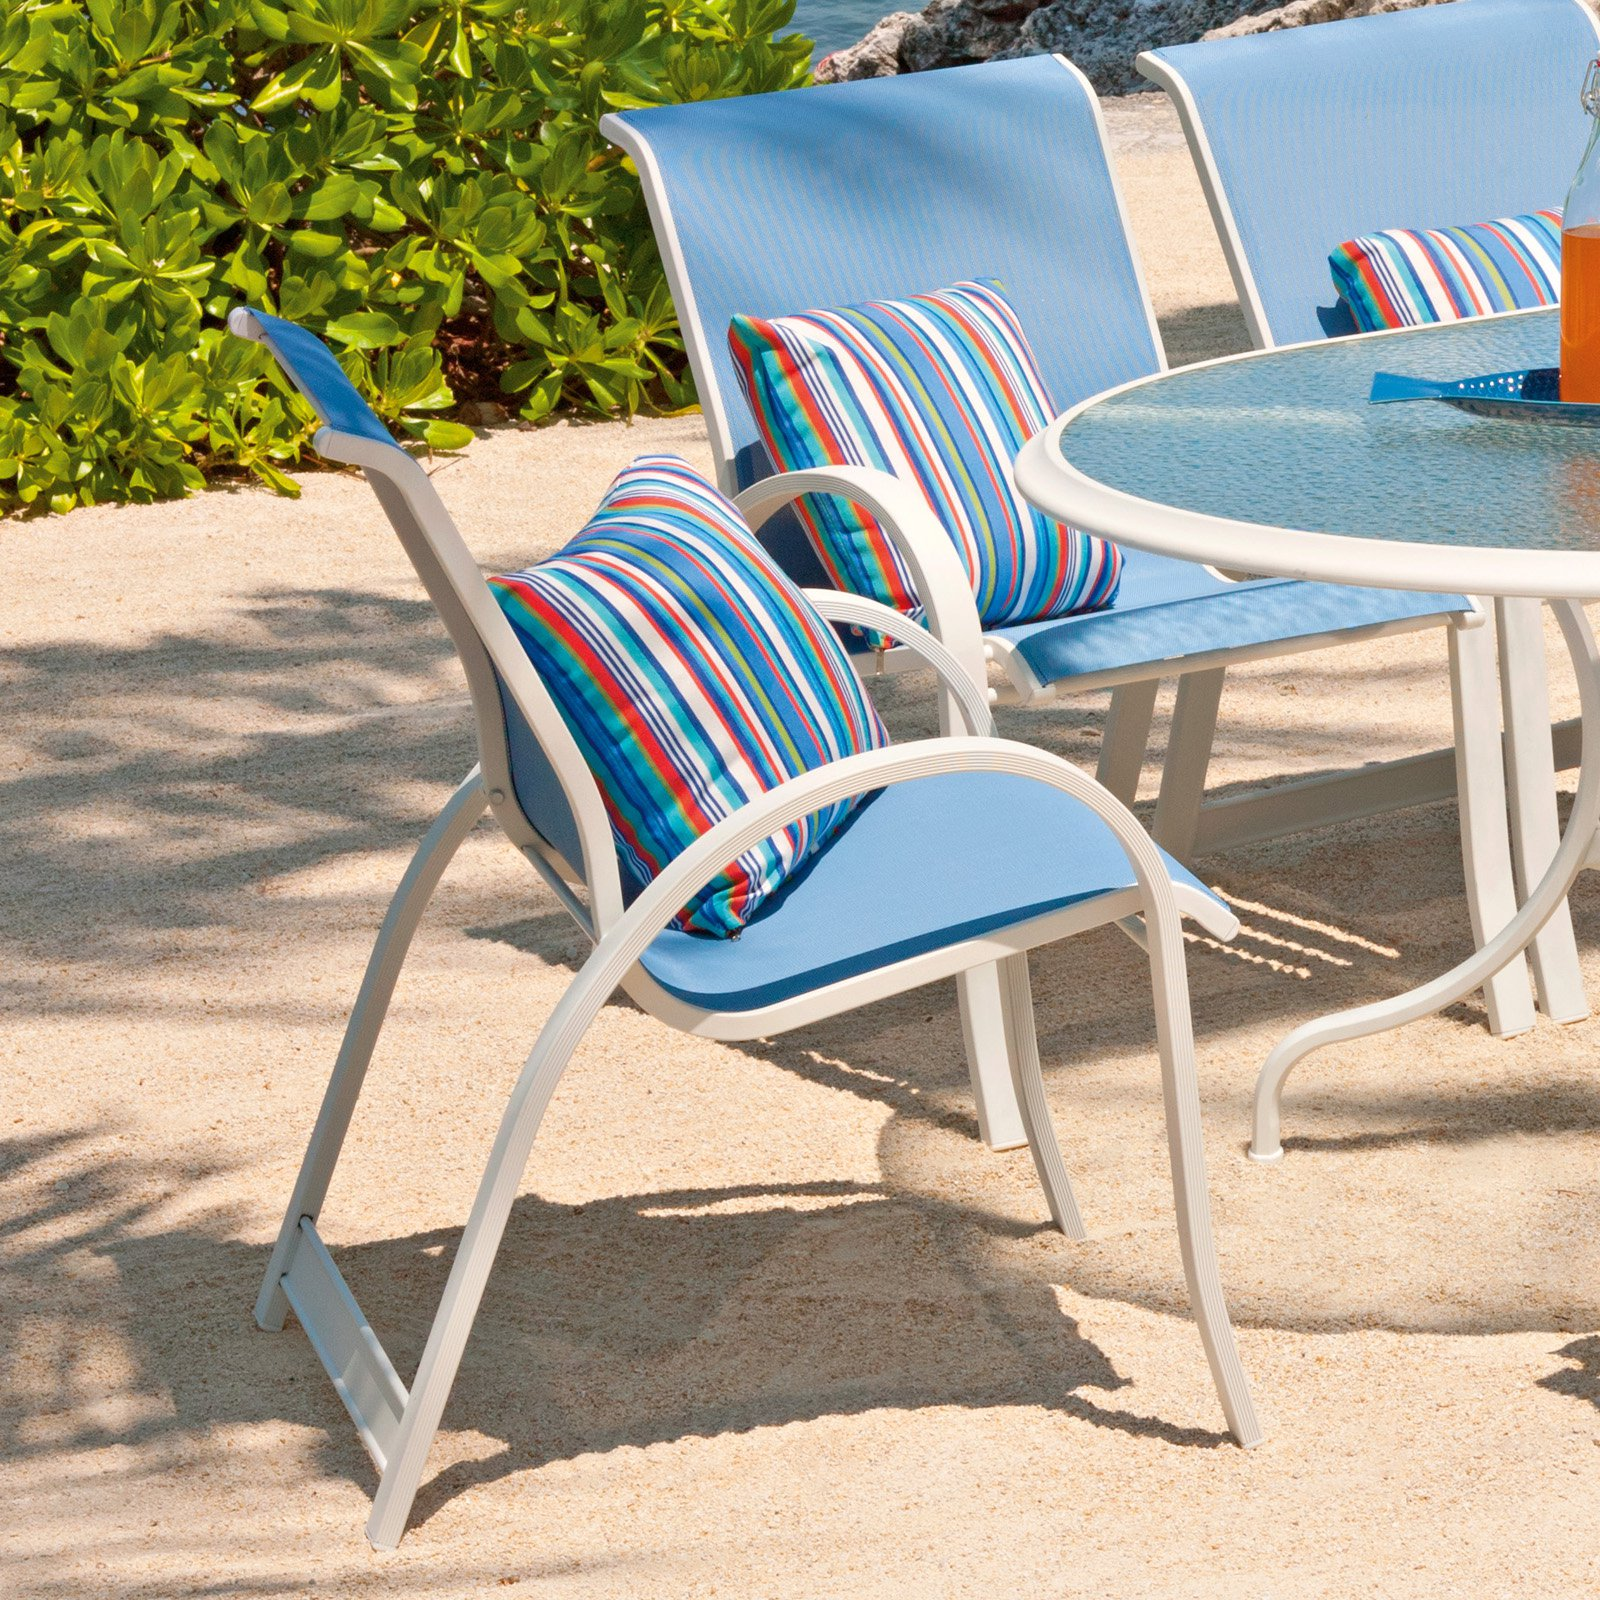 Patio Furniture Plus Home Design Ideas and